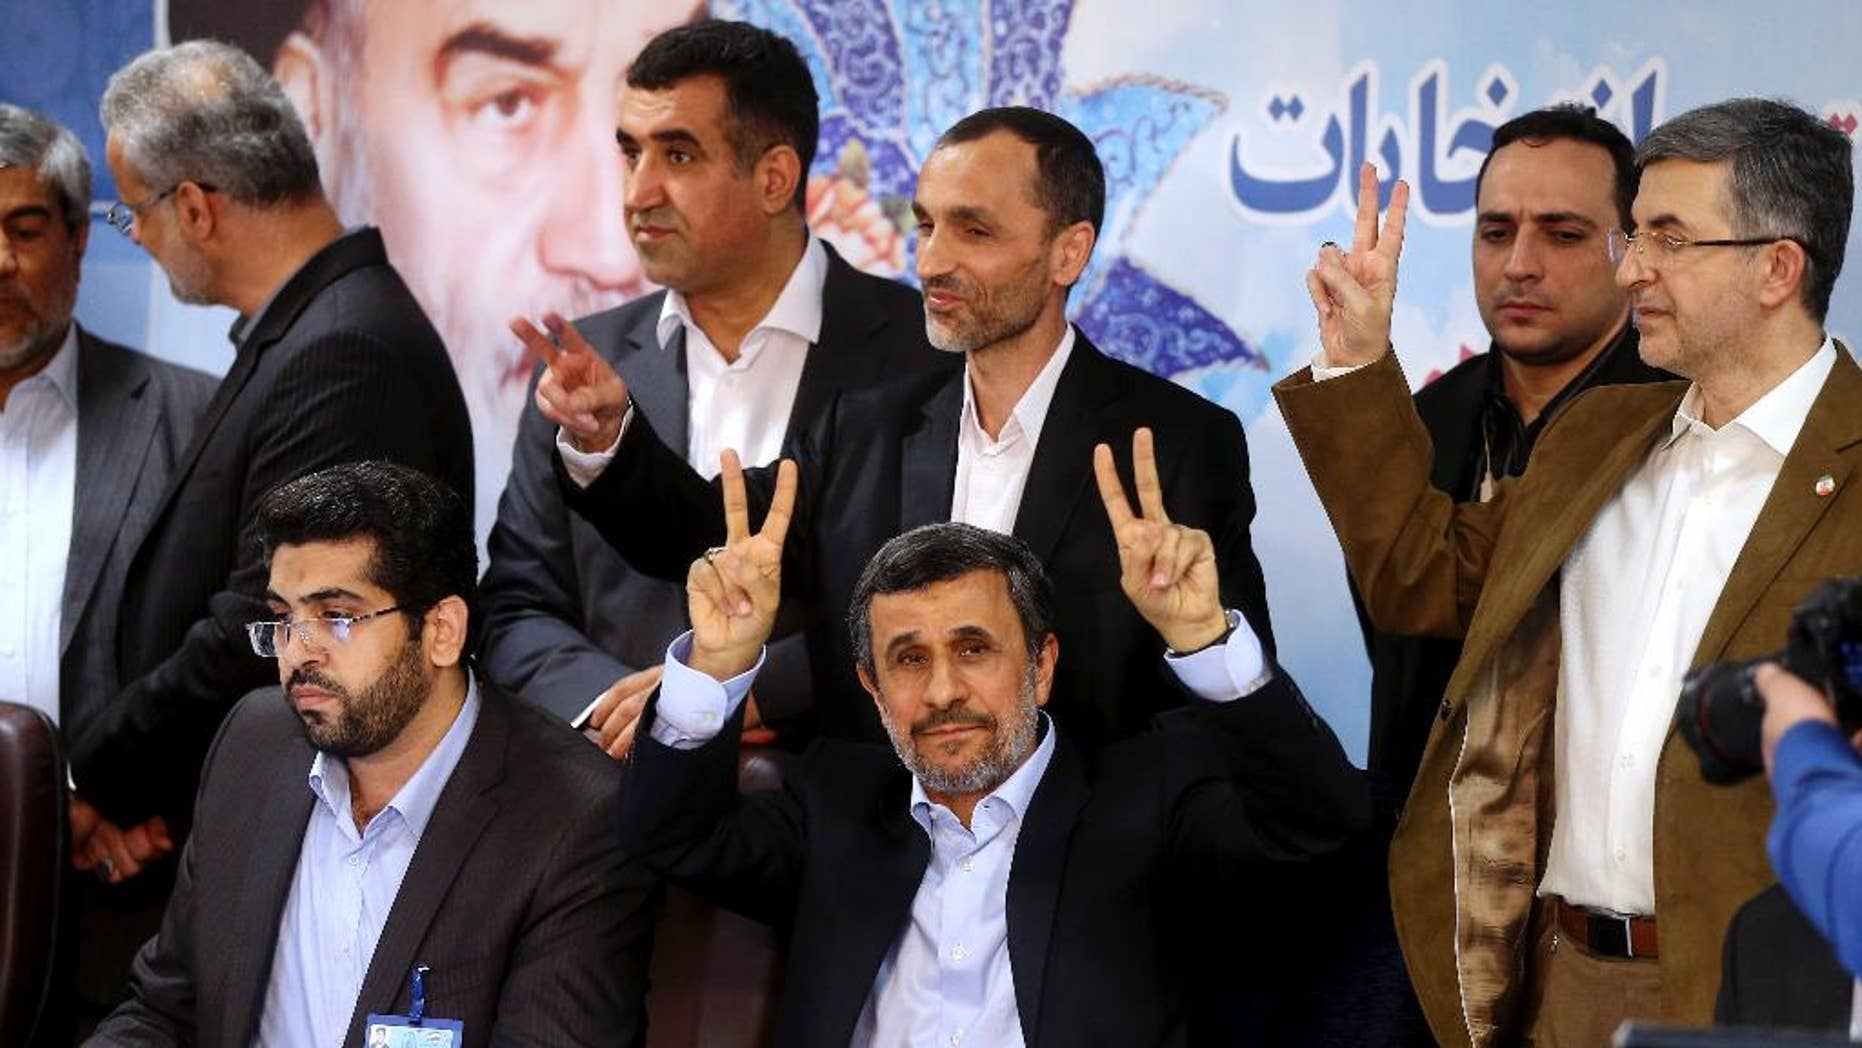 Former Iranian President Mahmoud Ahmadinejad, seated center, flashes the victory sign as he is registering candidacy for the upcoming presidential elections at the Interior Ministry in Tehran, Iran, Wednesday, April 12, 2017. Ahmadinejad on Wednesday unexpectedly filed to run in the country's May presidential election, contradicting a recommendation from the supreme leader to stay out of the race. (AP Photo/Ebrahim Noroozi)